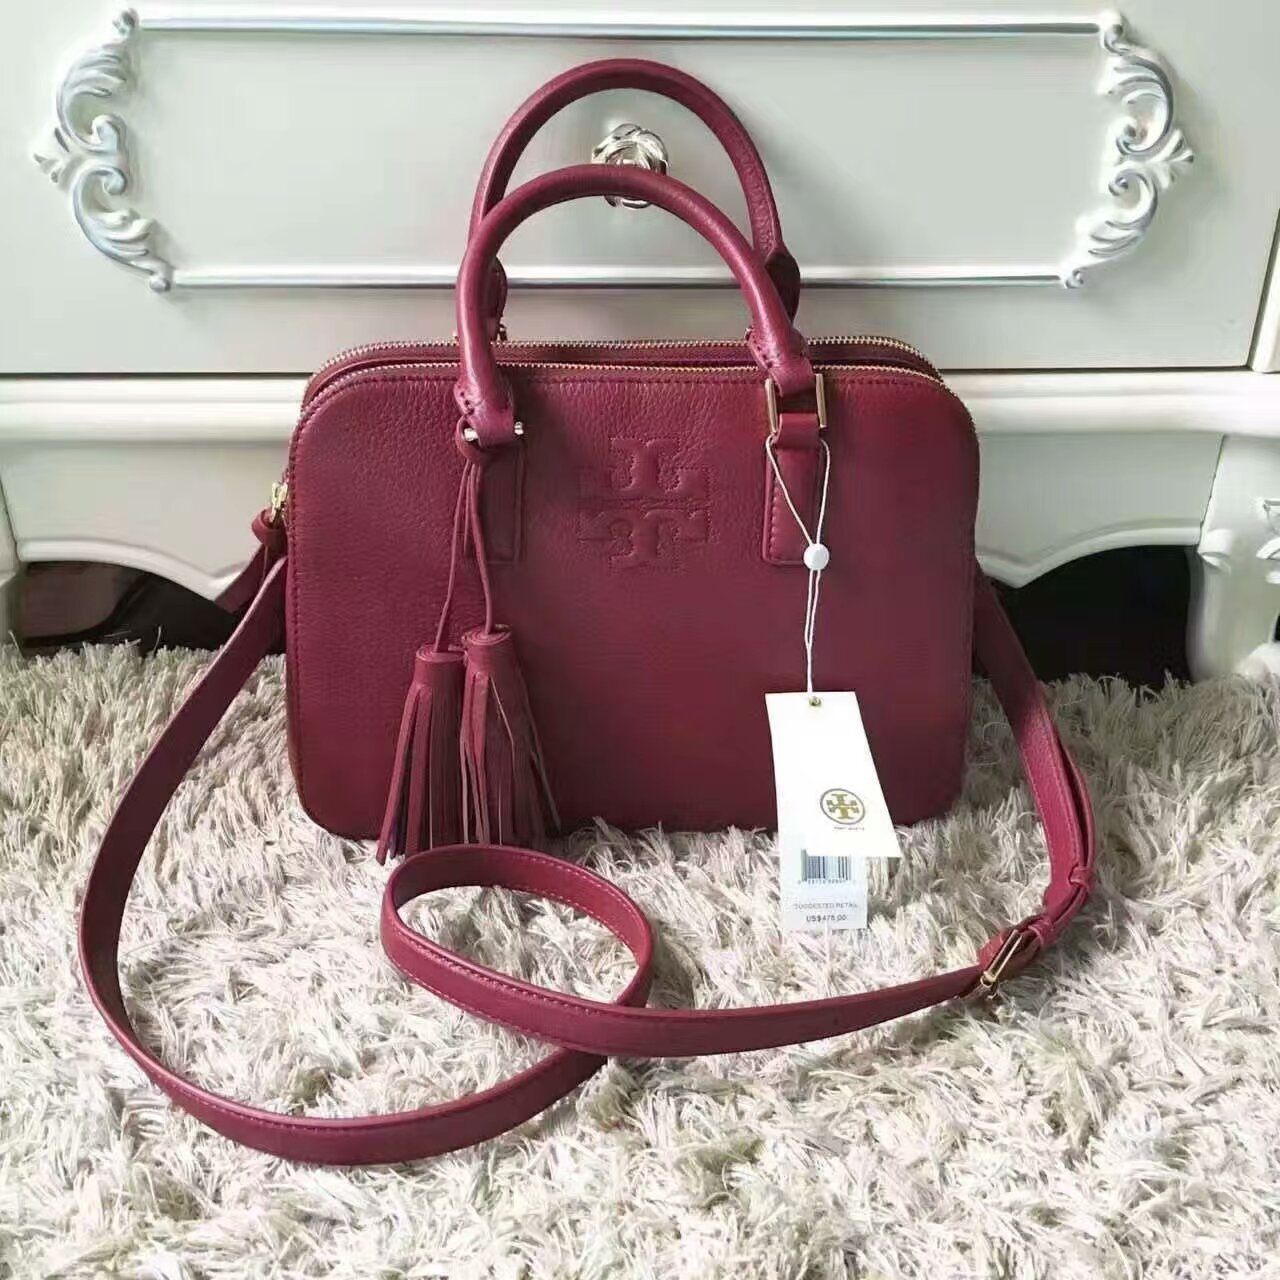 010dfe367a6c Mmexport1493972560665. Mmexport1493972560665. Previous. NWT Tory Burch Thea  Small Rounded Double-zip Satchel